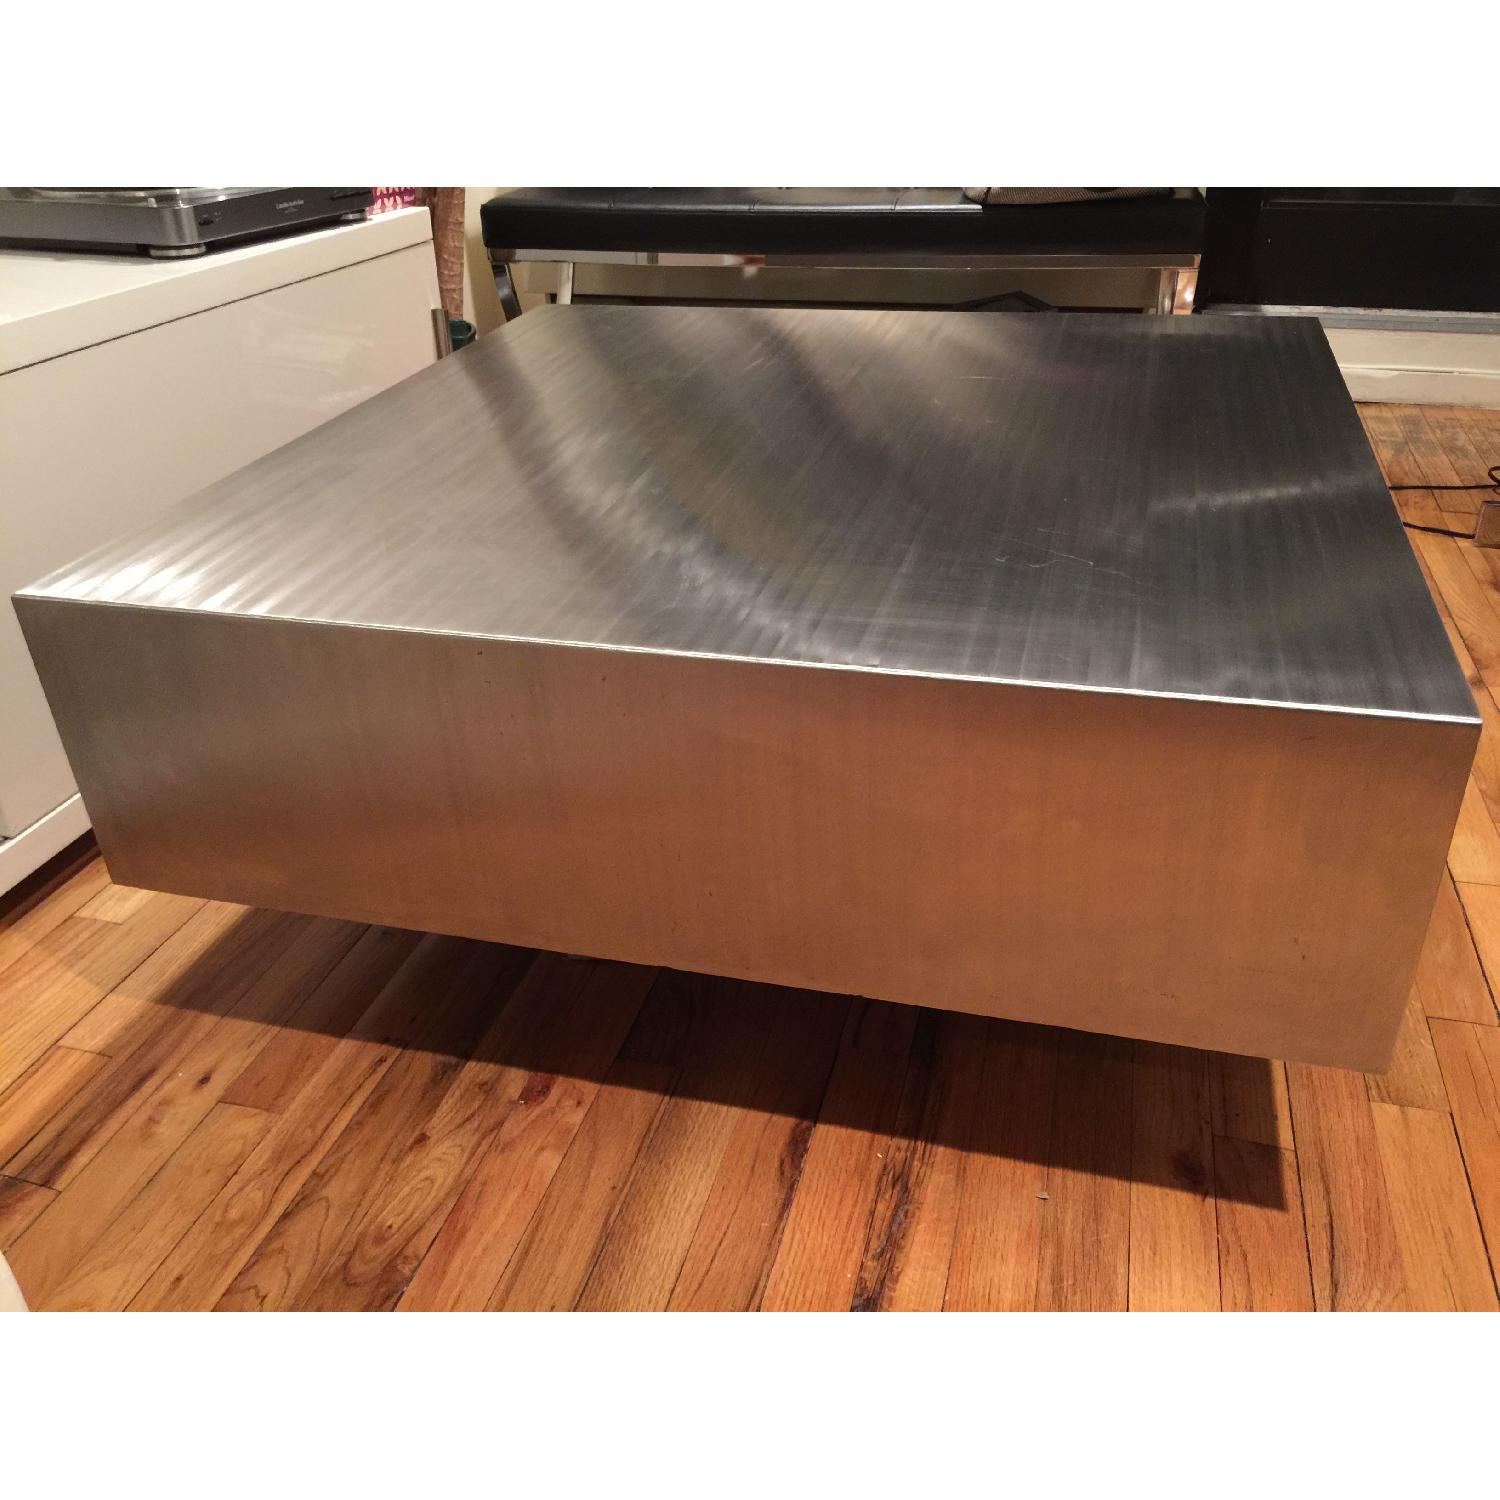 Industrial Brushed Stainless Steel Square Coffee Table - image-1